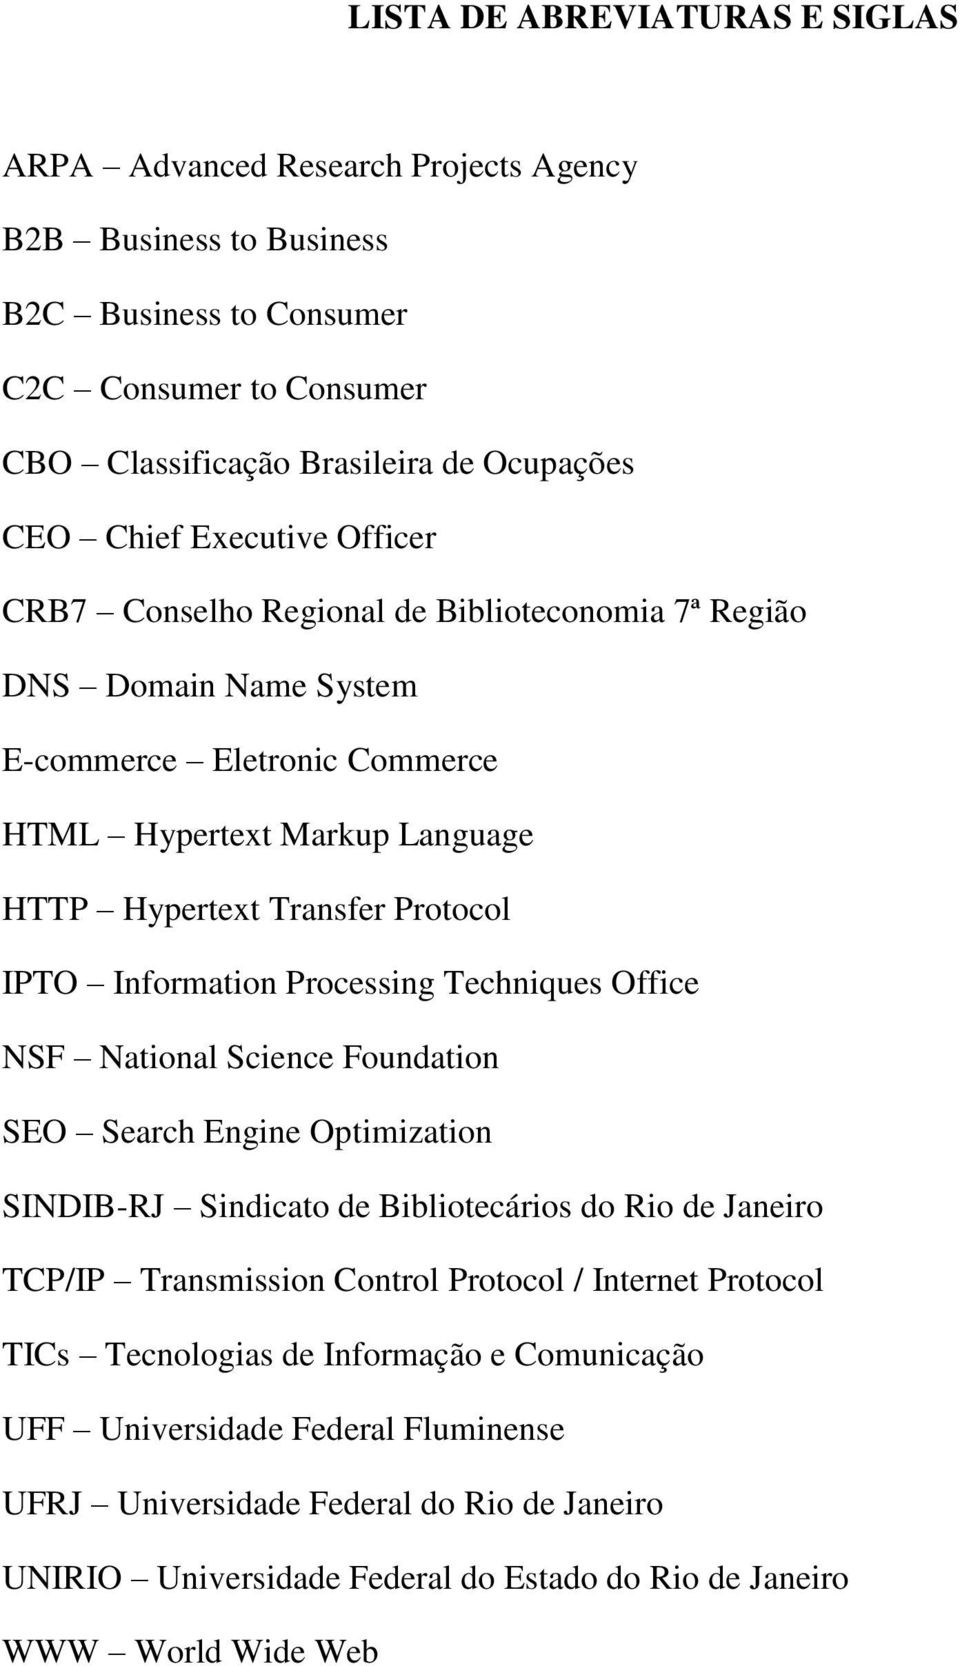 Information Processing Techniques Office NSF National Science Foundation SEO Search Engine Optimization SINDIB-RJ Sindicato de Bibliotecários do Rio de Janeiro TCP/IP Transmission Control Protocol /